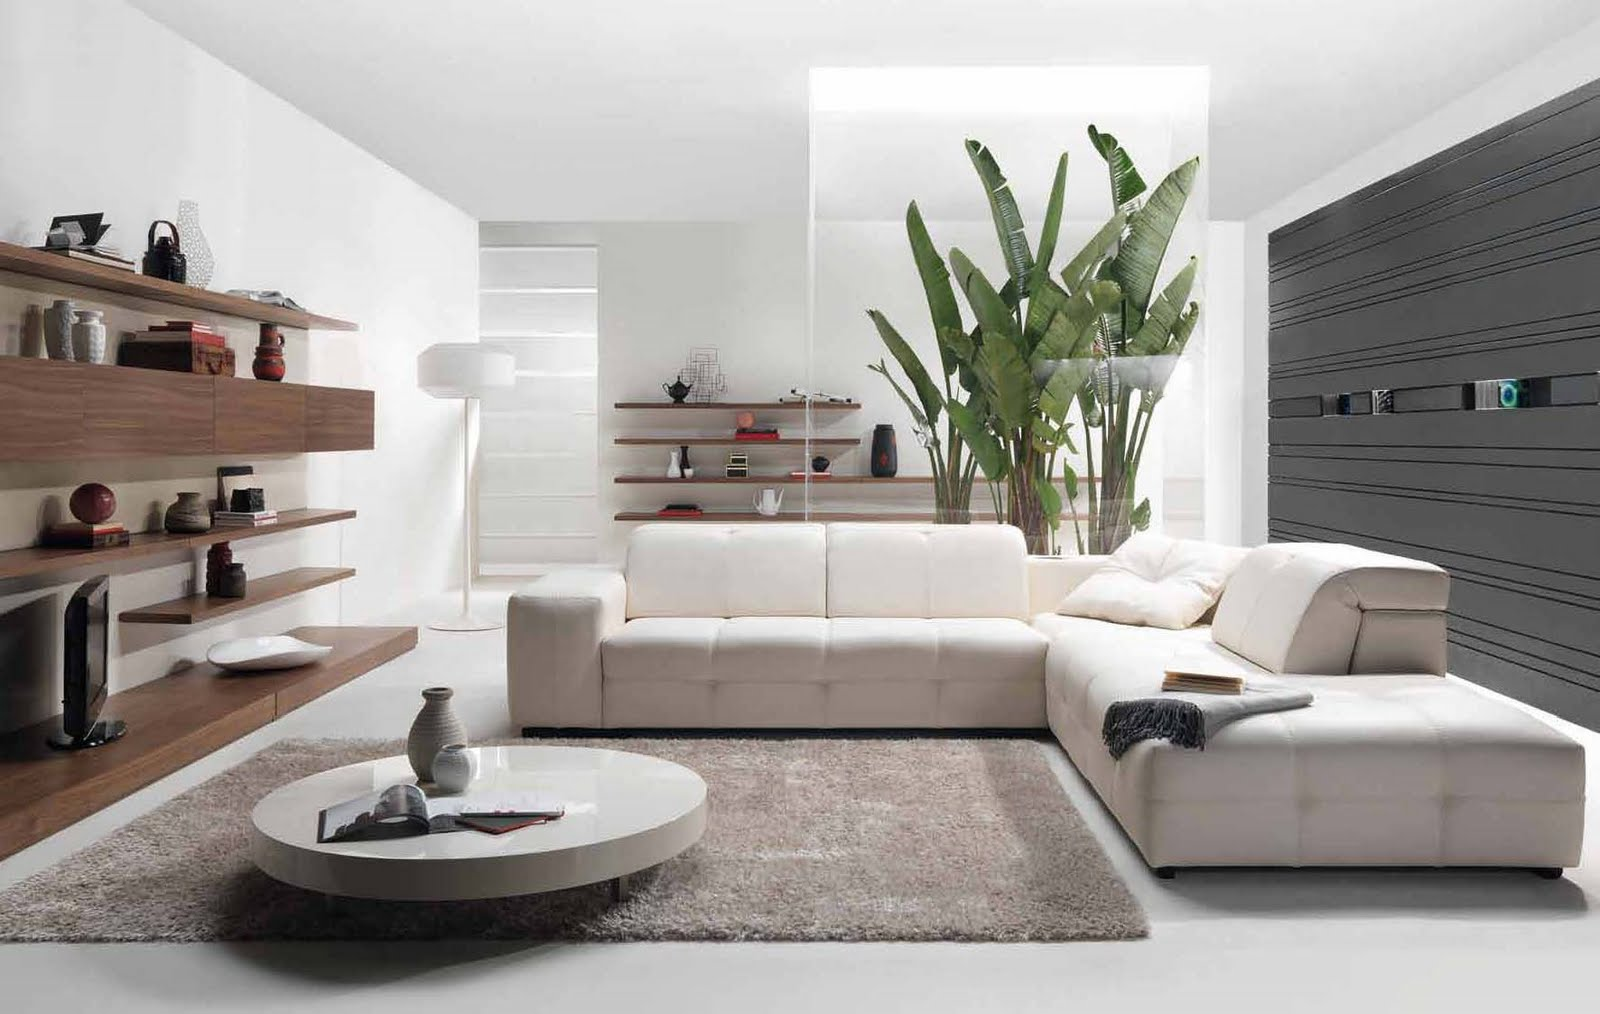 Future house design modern living room interior design styles 2010 by natuzzi - Modern living room design ideas ...